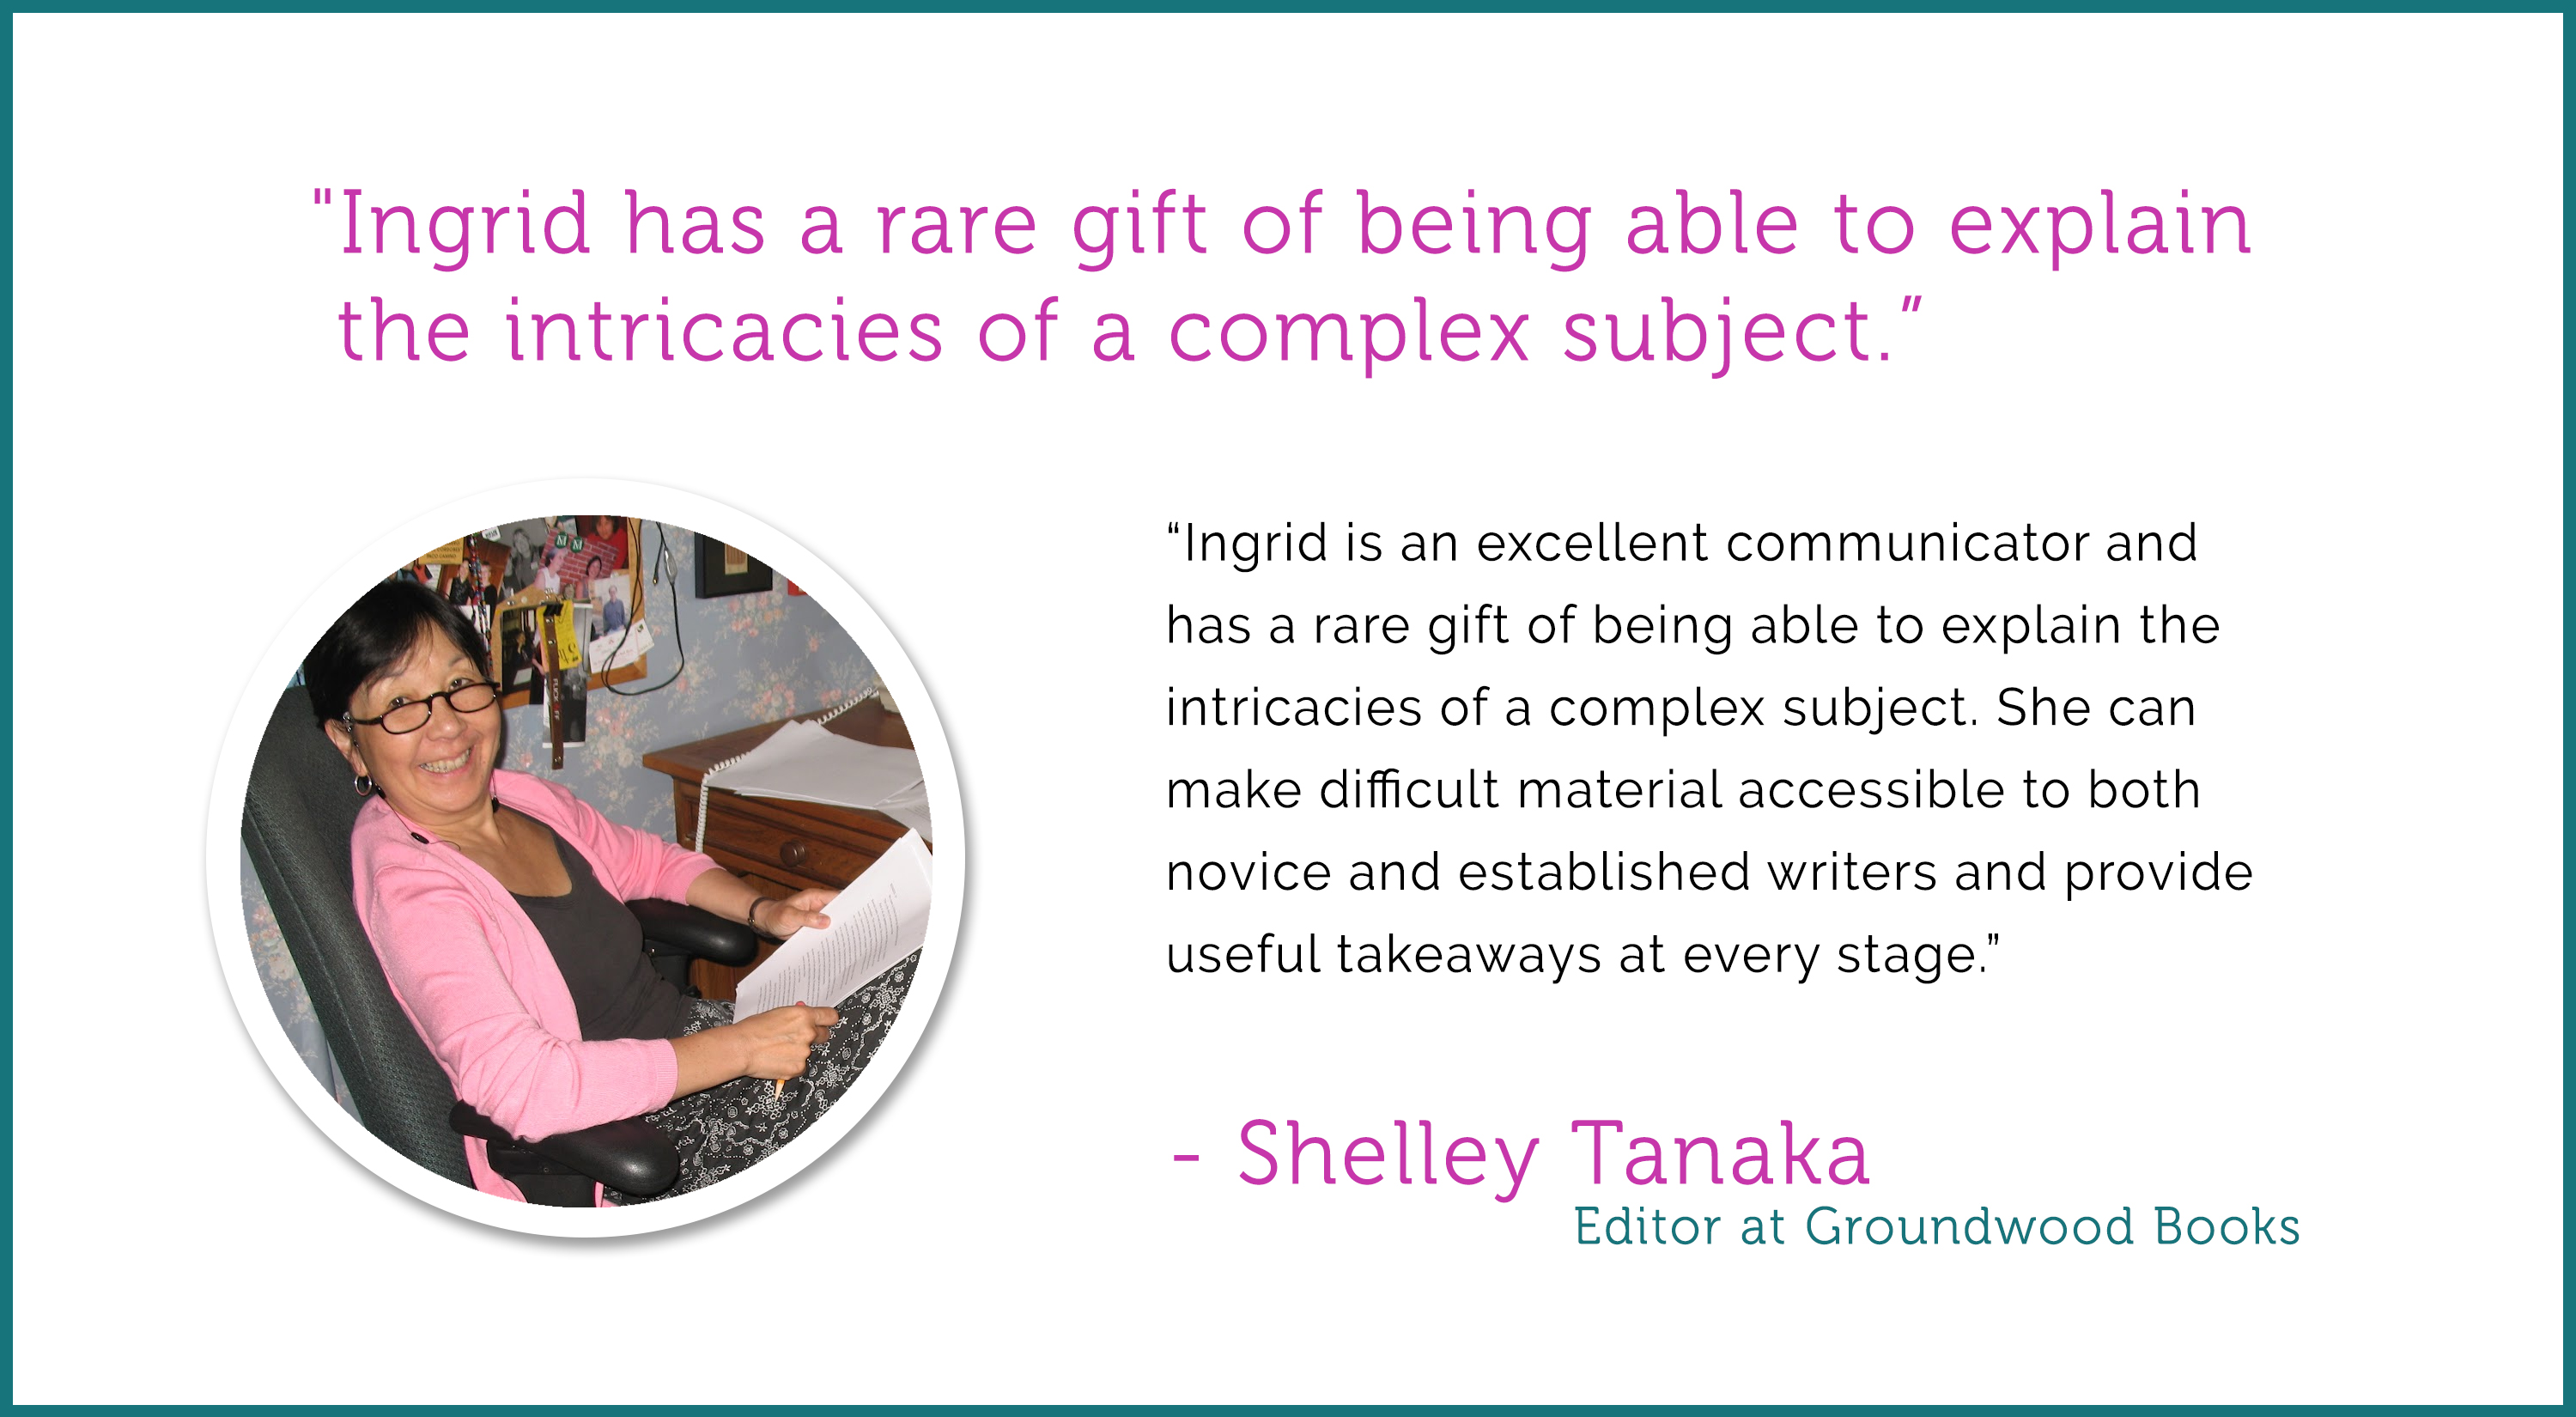 ingrid-sundberg-critique-testimonial-by-shelley-tanaka